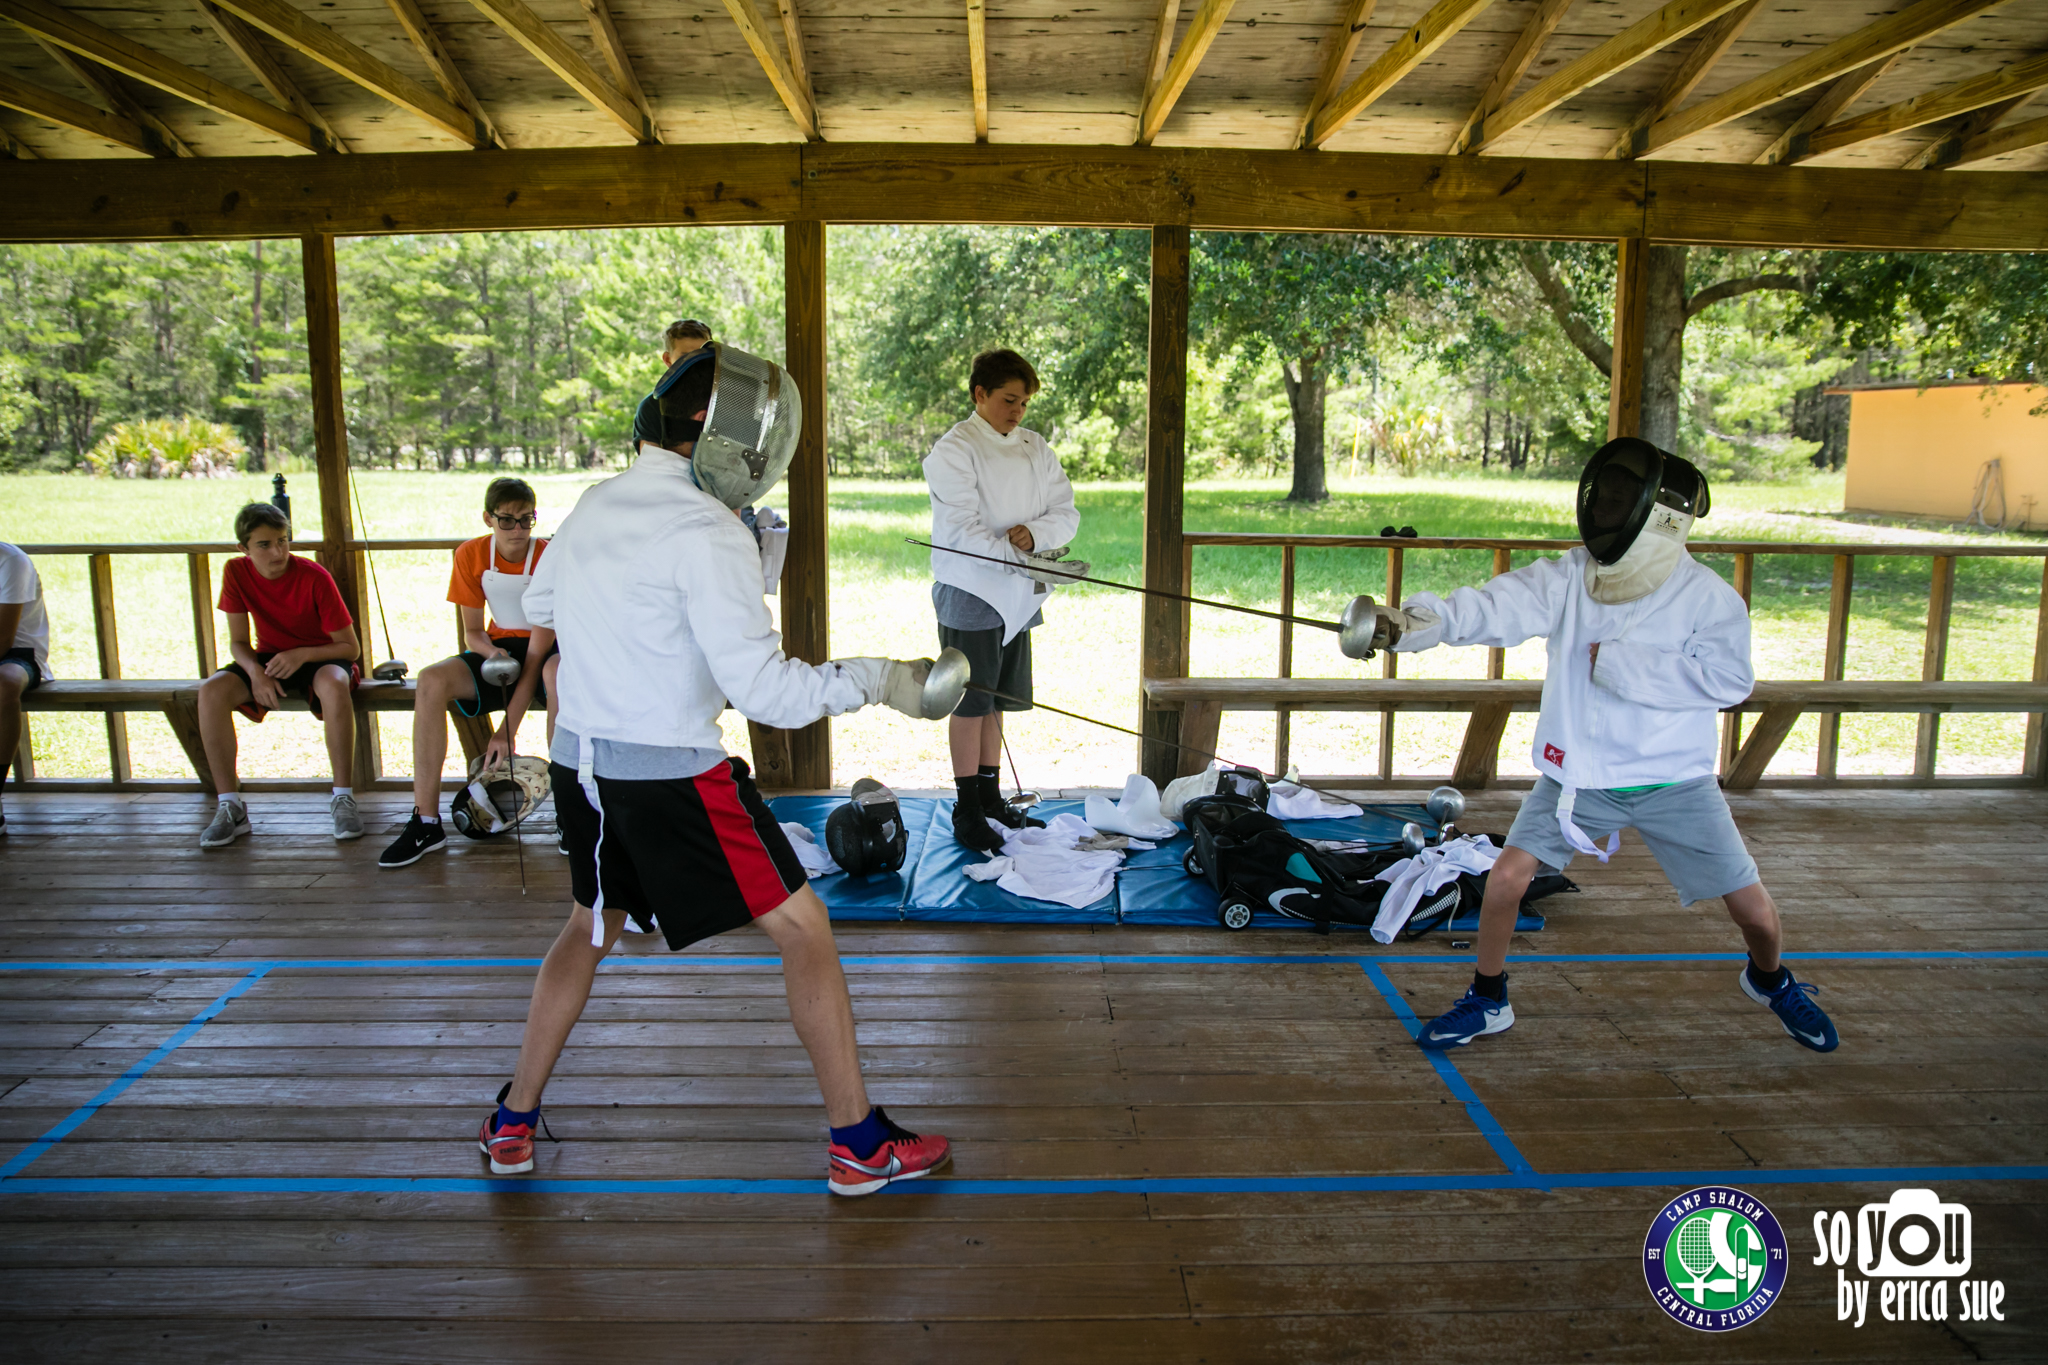 camp-shalom-sleepaway-camp-central-florida-so-you-by-erica-sue-2209.jpg